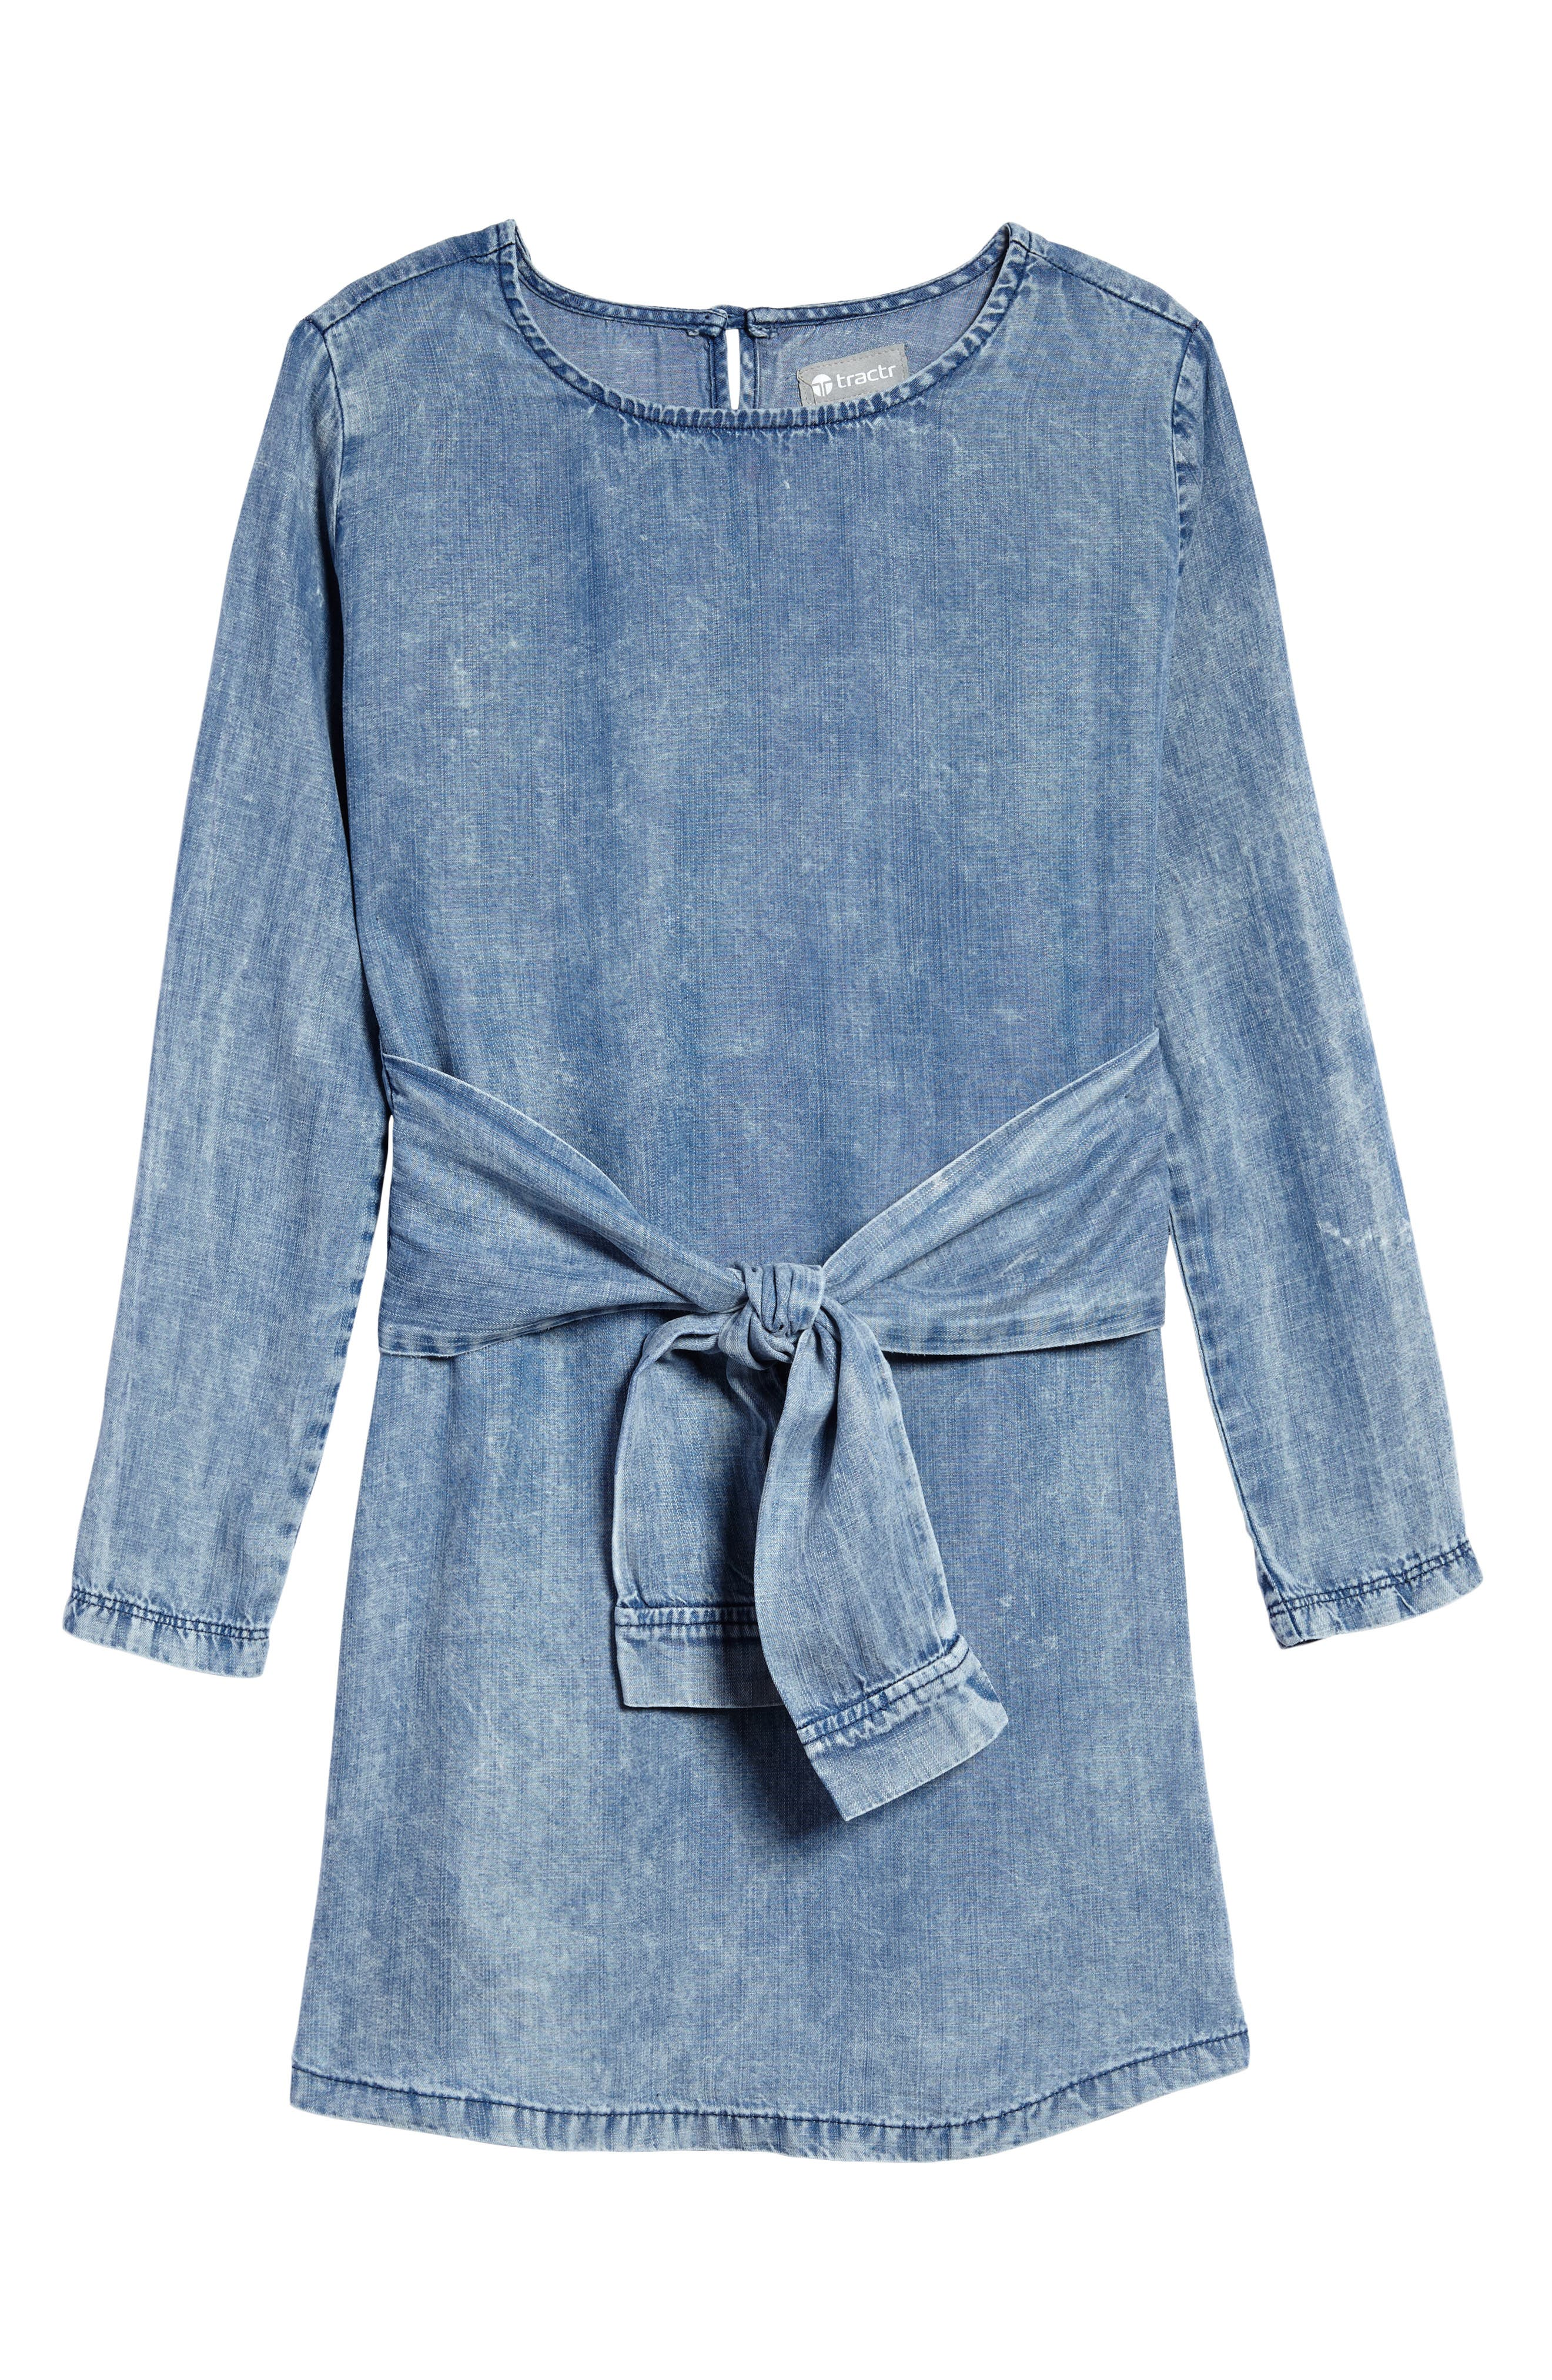 Alternate Image 1 Selected - Tractr Tie Front Chambray Dress (Big Girls)